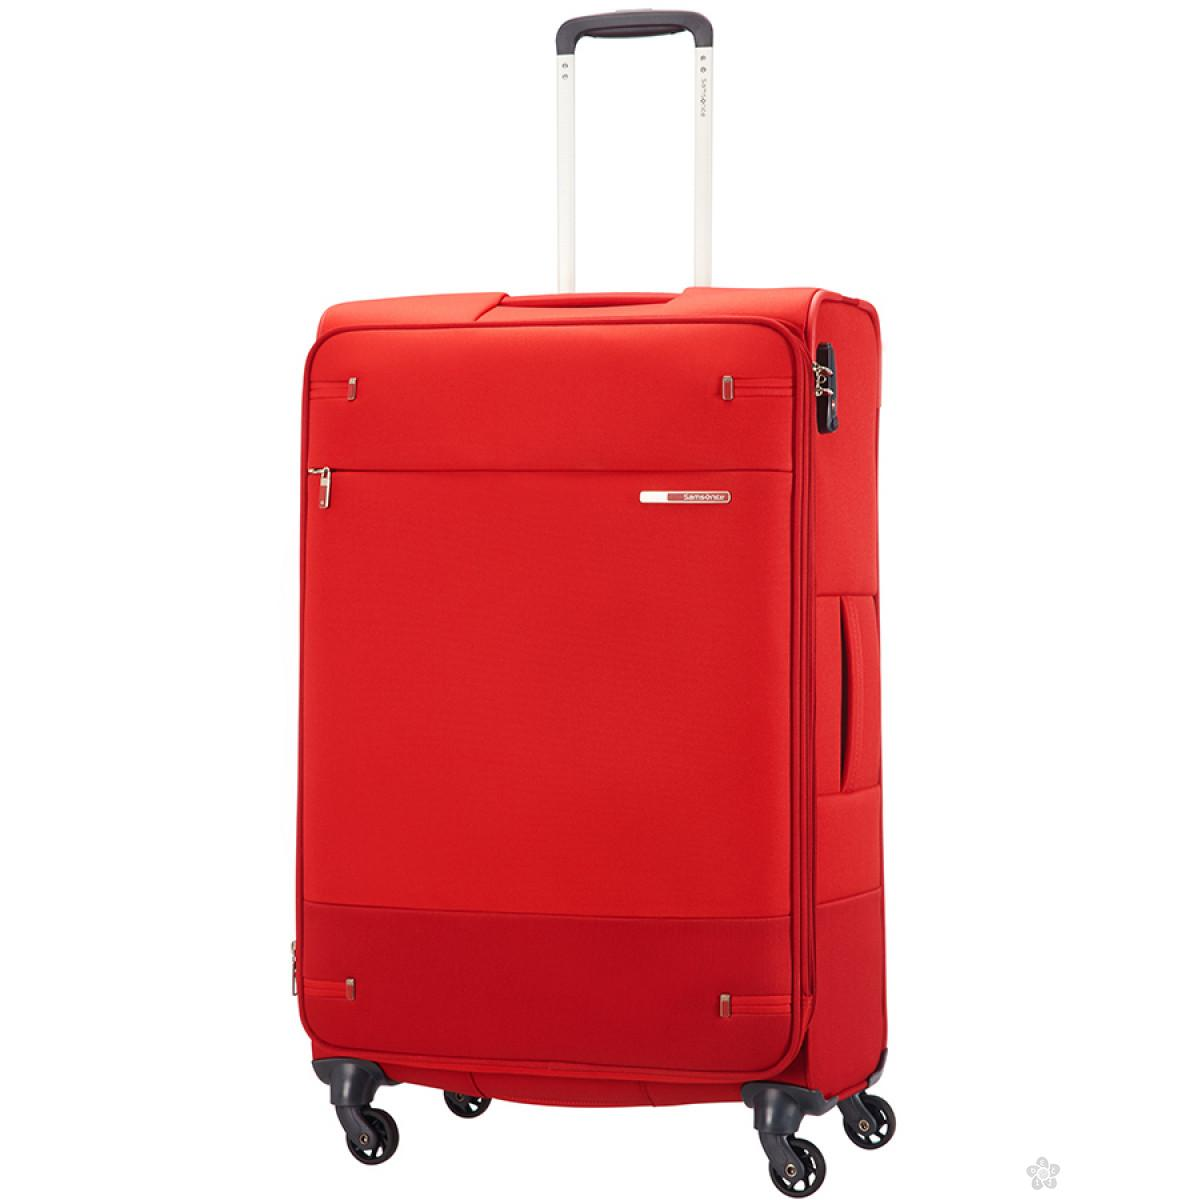 Kofer Base Spinner 78cm Samsonite, 38N.005.09